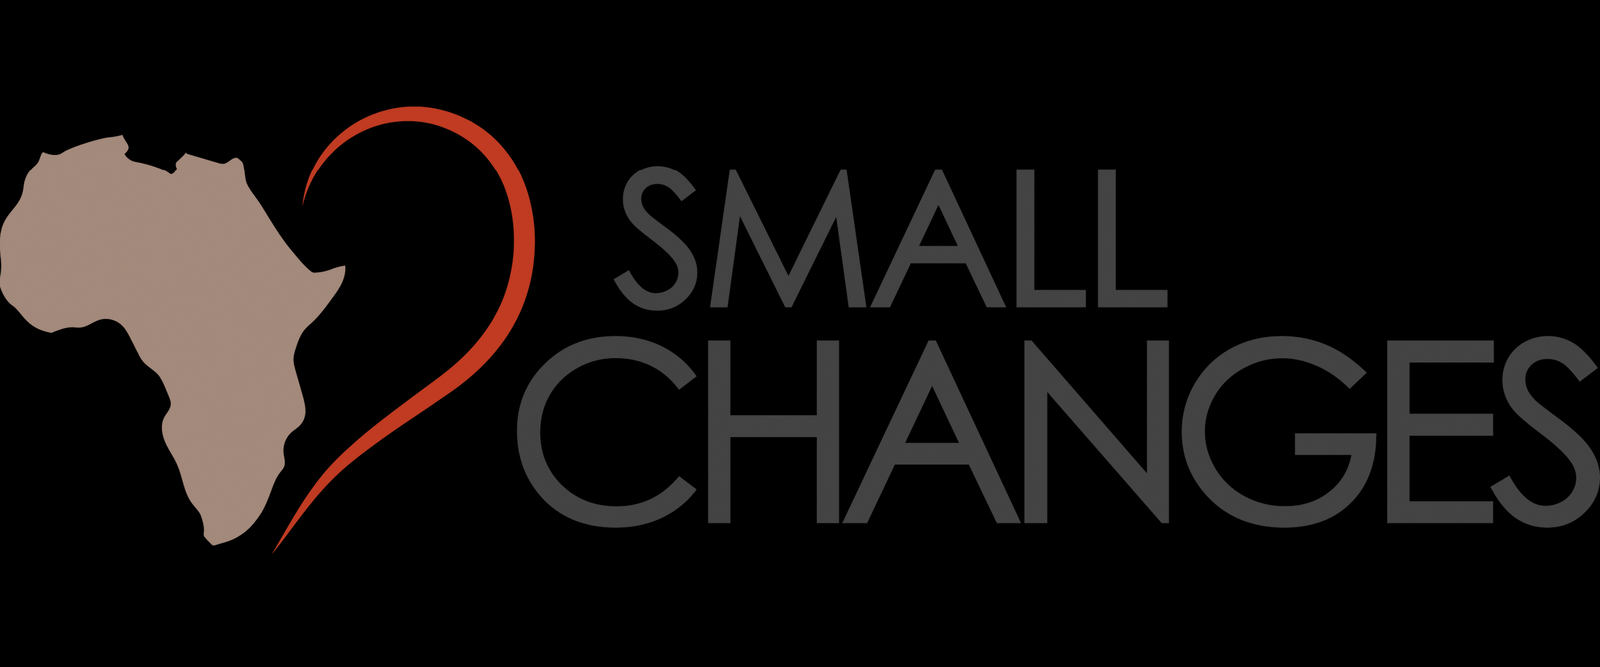 Small Changes e.V.